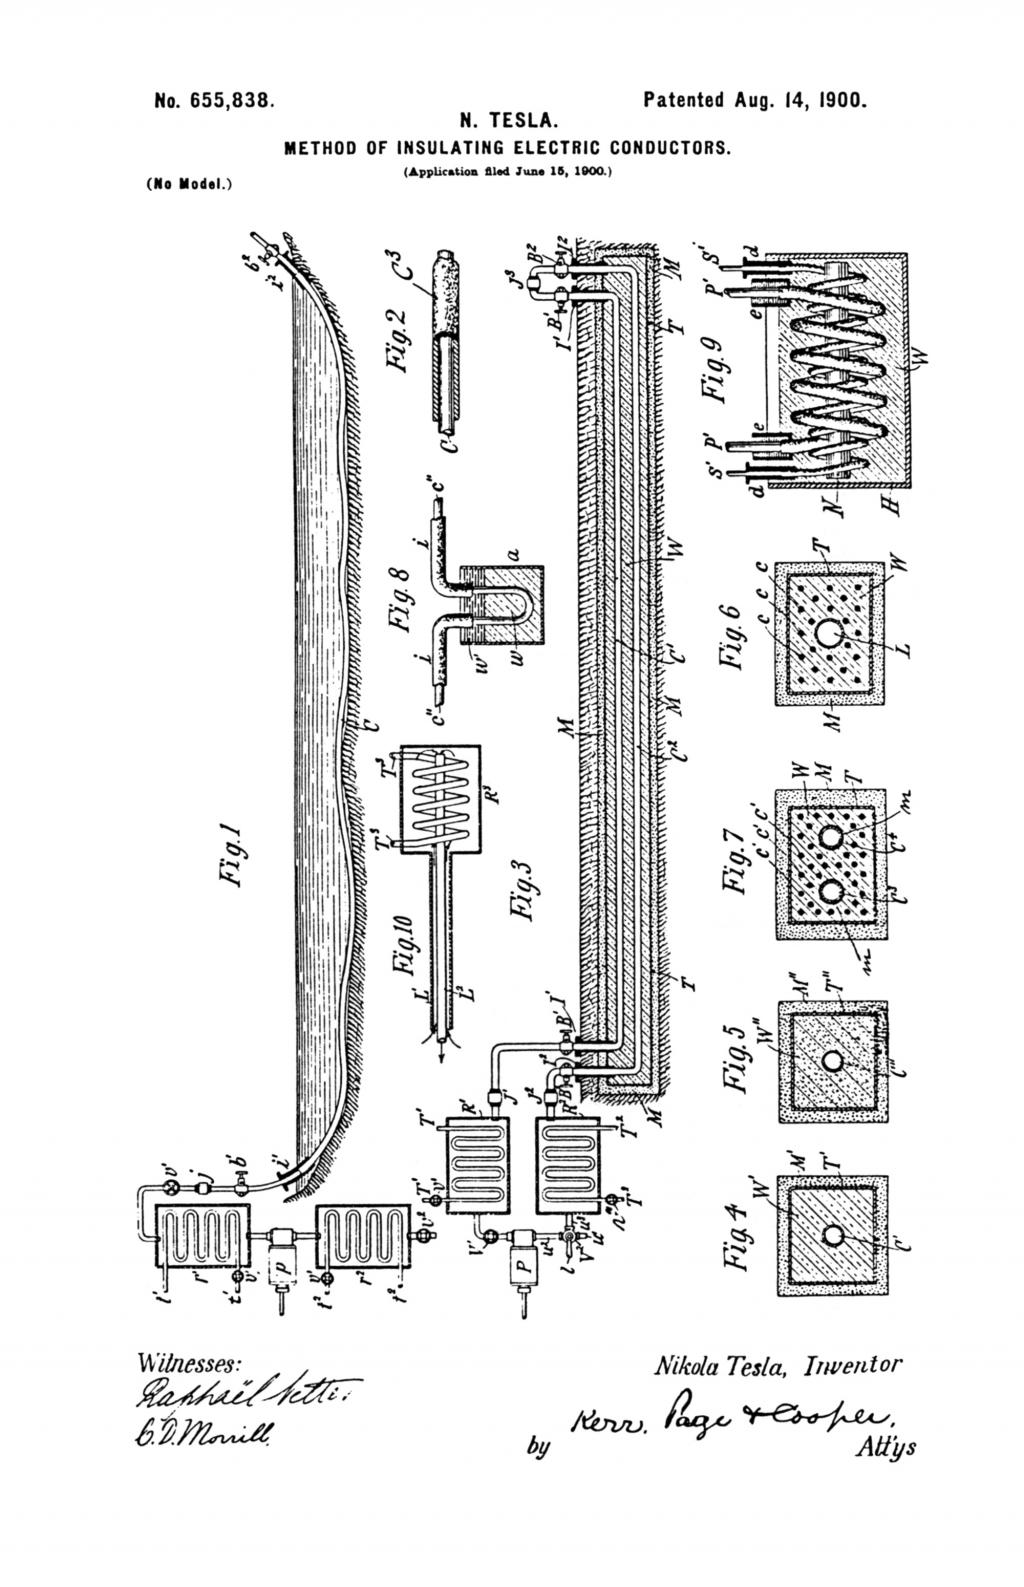 Nikola Tesla U.S. Patent 655,838 - Method of Insulating Electric Conductors - Image 1